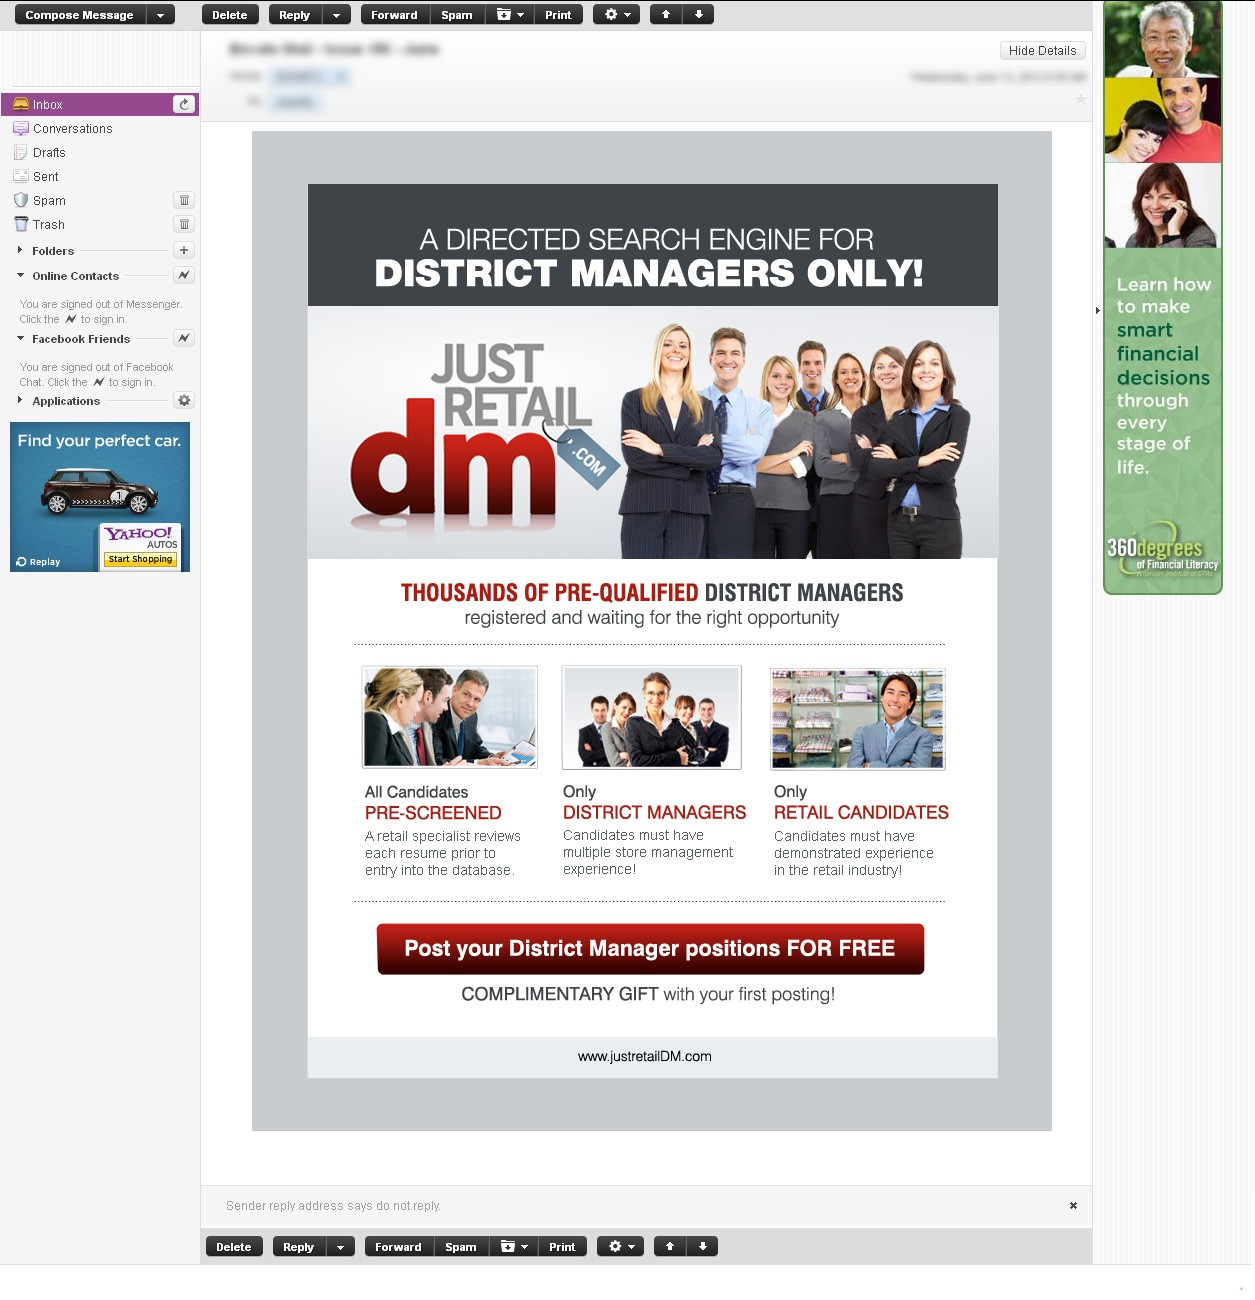 Create the next banner ad for justretailDM